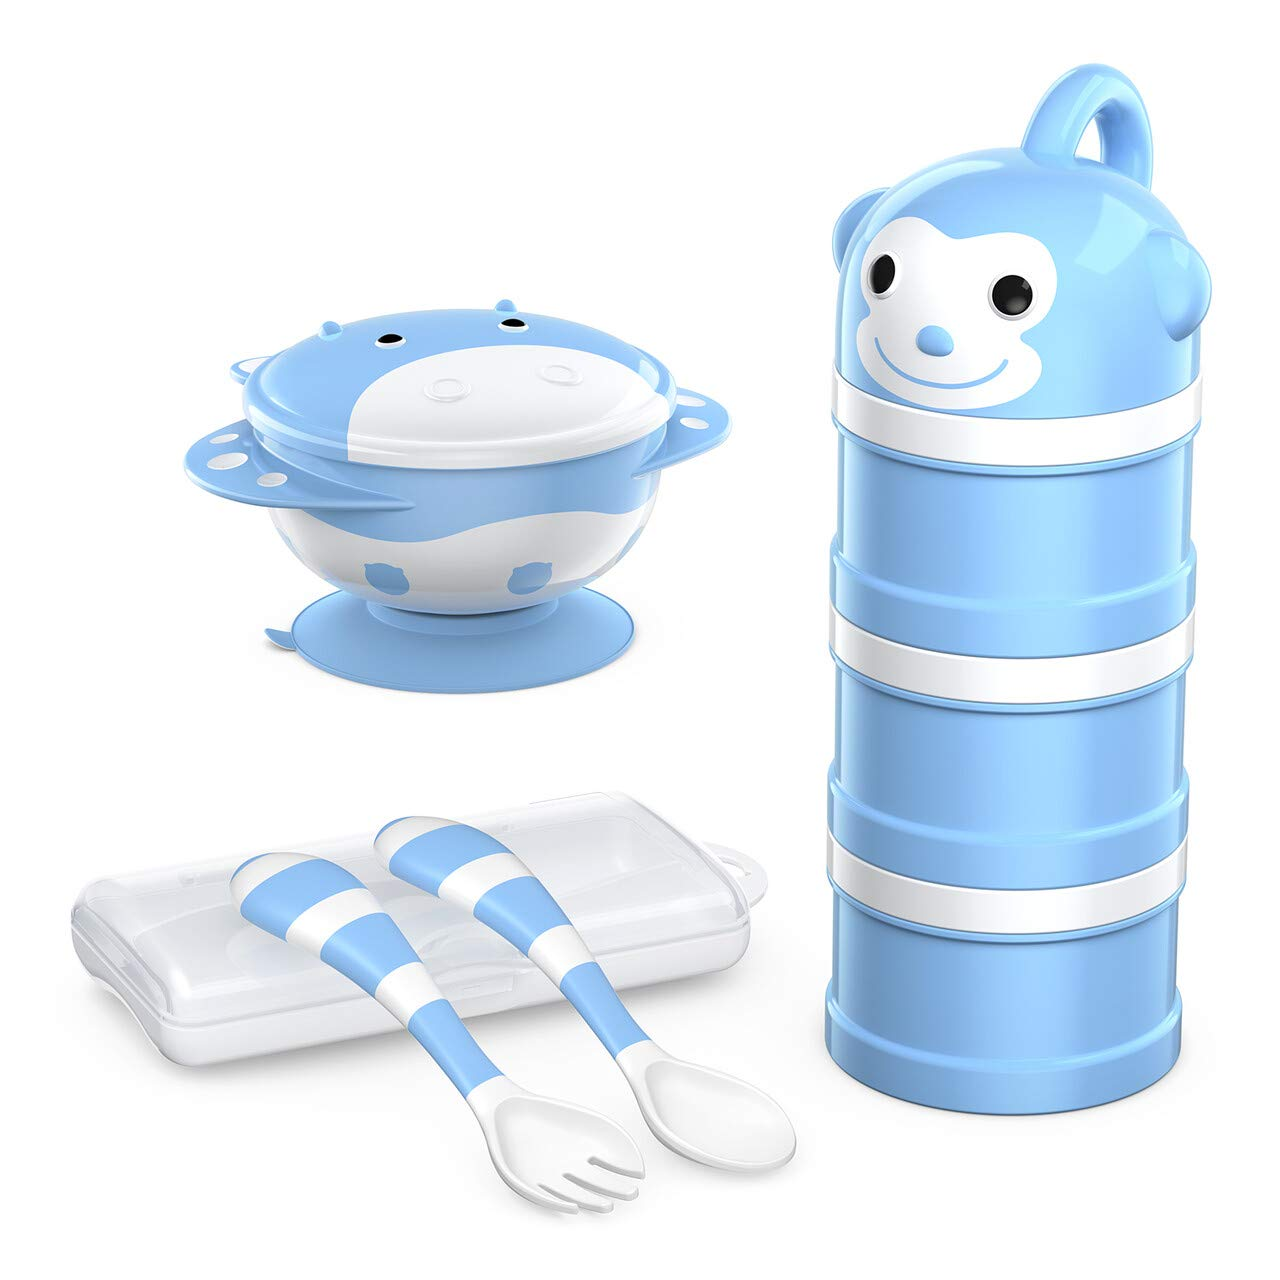 BabyKing Baby Suction Bowl and Spoon Set, Harmless Baby Feeding Set, Children Tableware Set, Stay Put Baby Suction Bowl Spill Proof, Spoons Forks Set, 3 Milk Powder Dispensers for Baby's 3 Meal